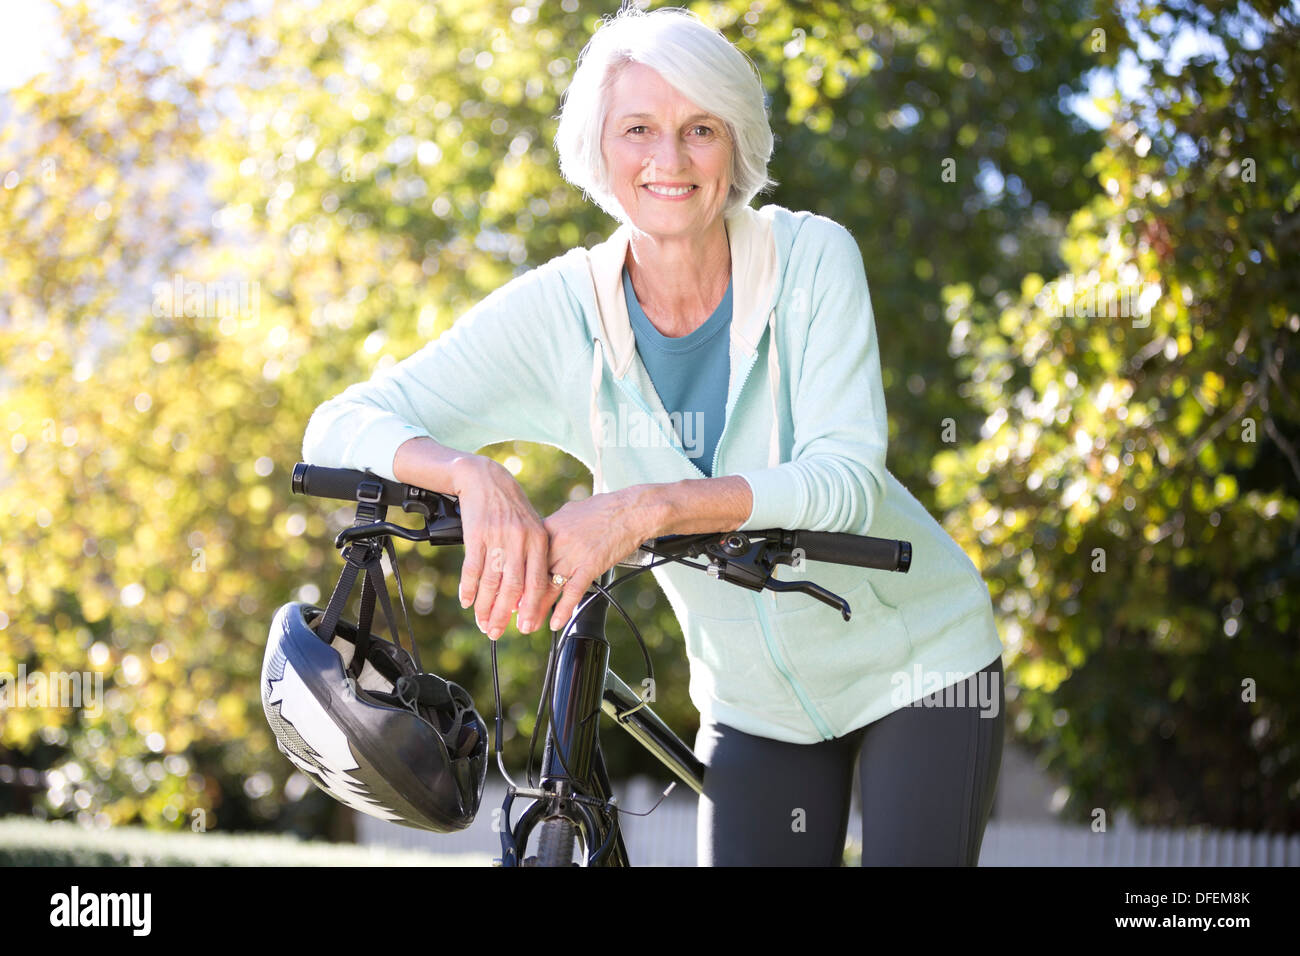 Portrait of senior woman leaning on bicycle - Stock Image